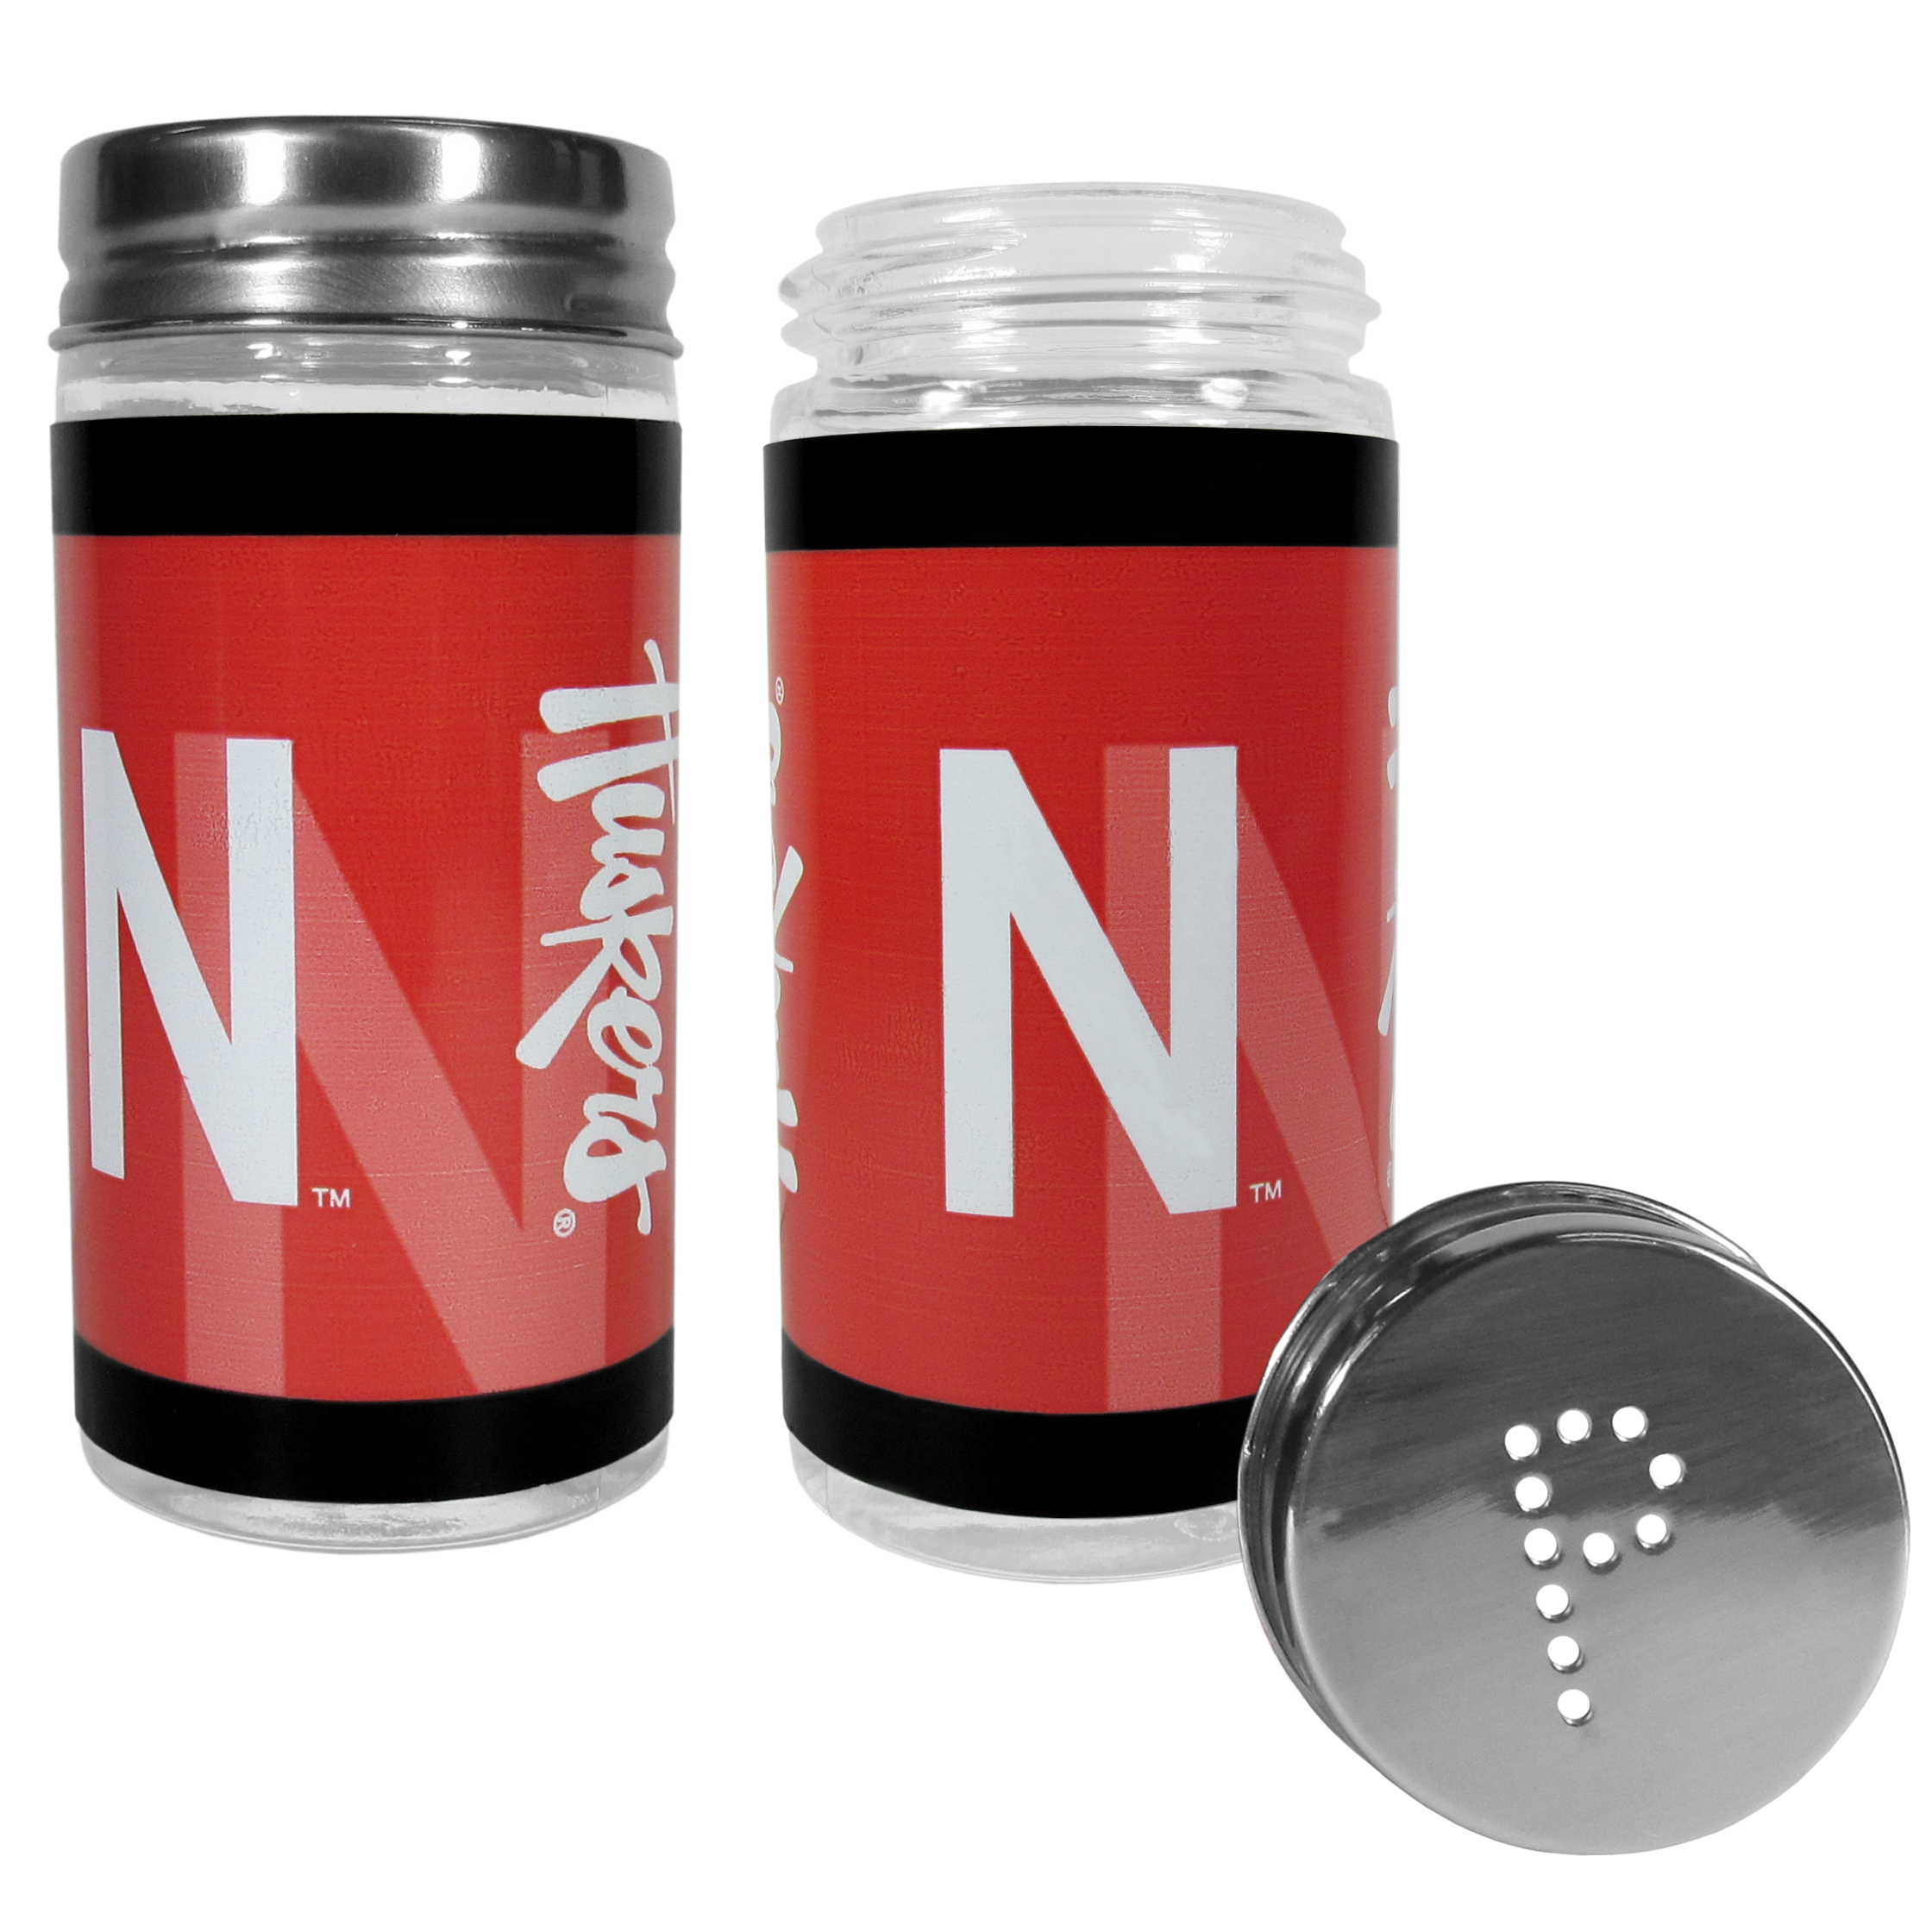 Nebraska Cornhuskers Tailgater Salt & Pepper Shakers - No tailgate party is complete without your Nebraska Cornhuskers salt & pepper shakers featuring bright team graphics. The glass shakers are 3.75 inches tall and the screw top lids have holes that spell out P and S. These team shakers are a great grill accessory whether you are barbecuing on the patio, picnicing or having a game day party.